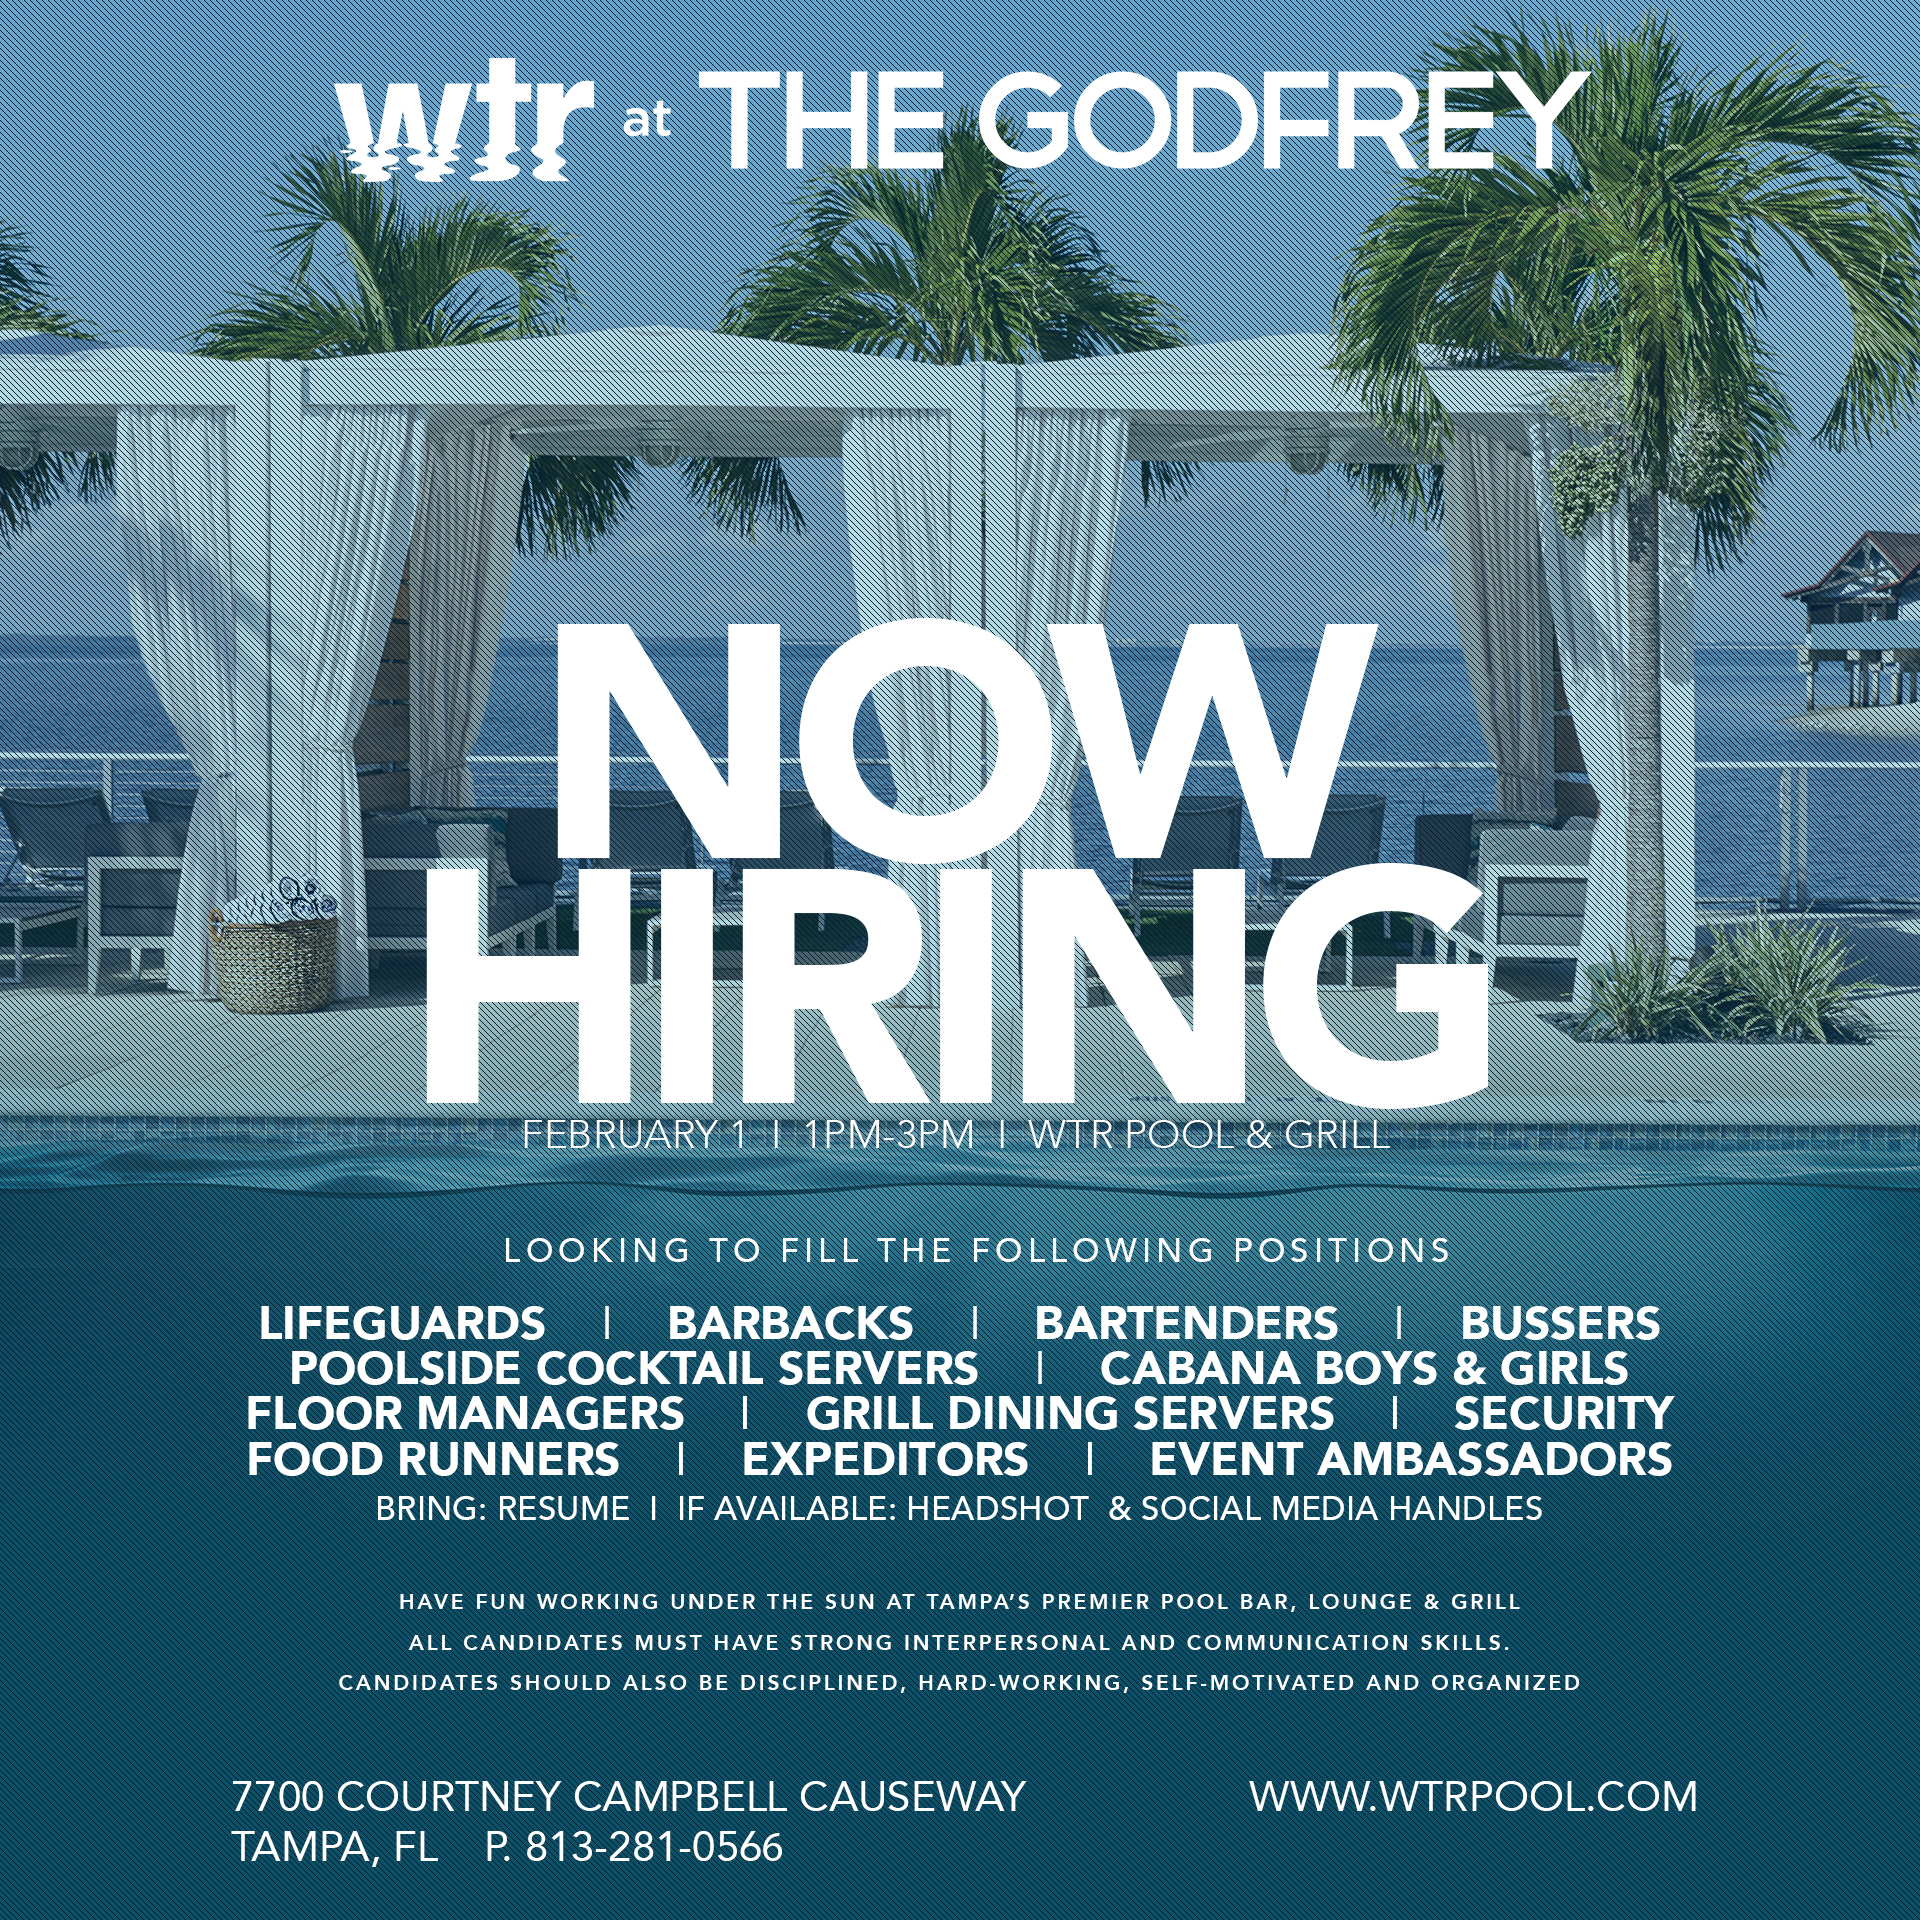 Client News: The Godfrey Hotel & Cabanas to Hire 60+ Positions this February